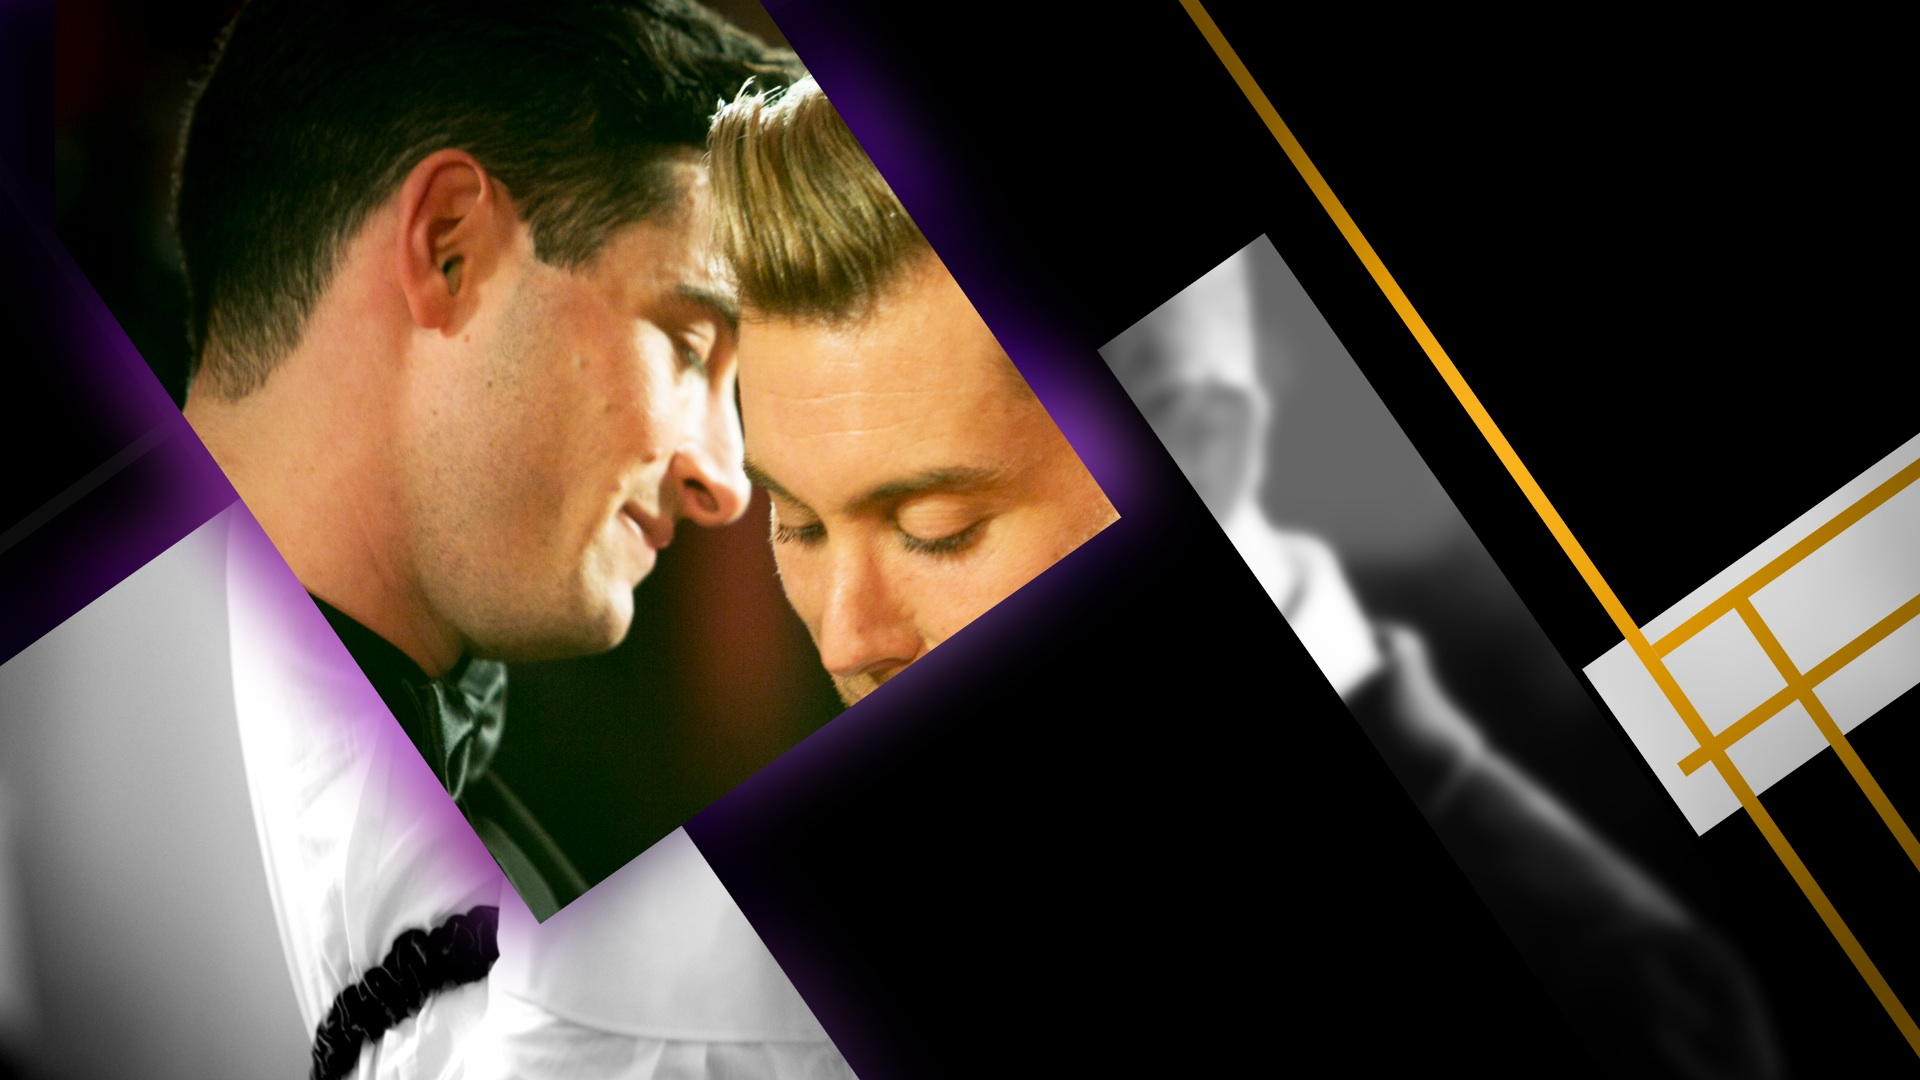 main title design | Lance Loves Michael: The Lance Bass Wedding